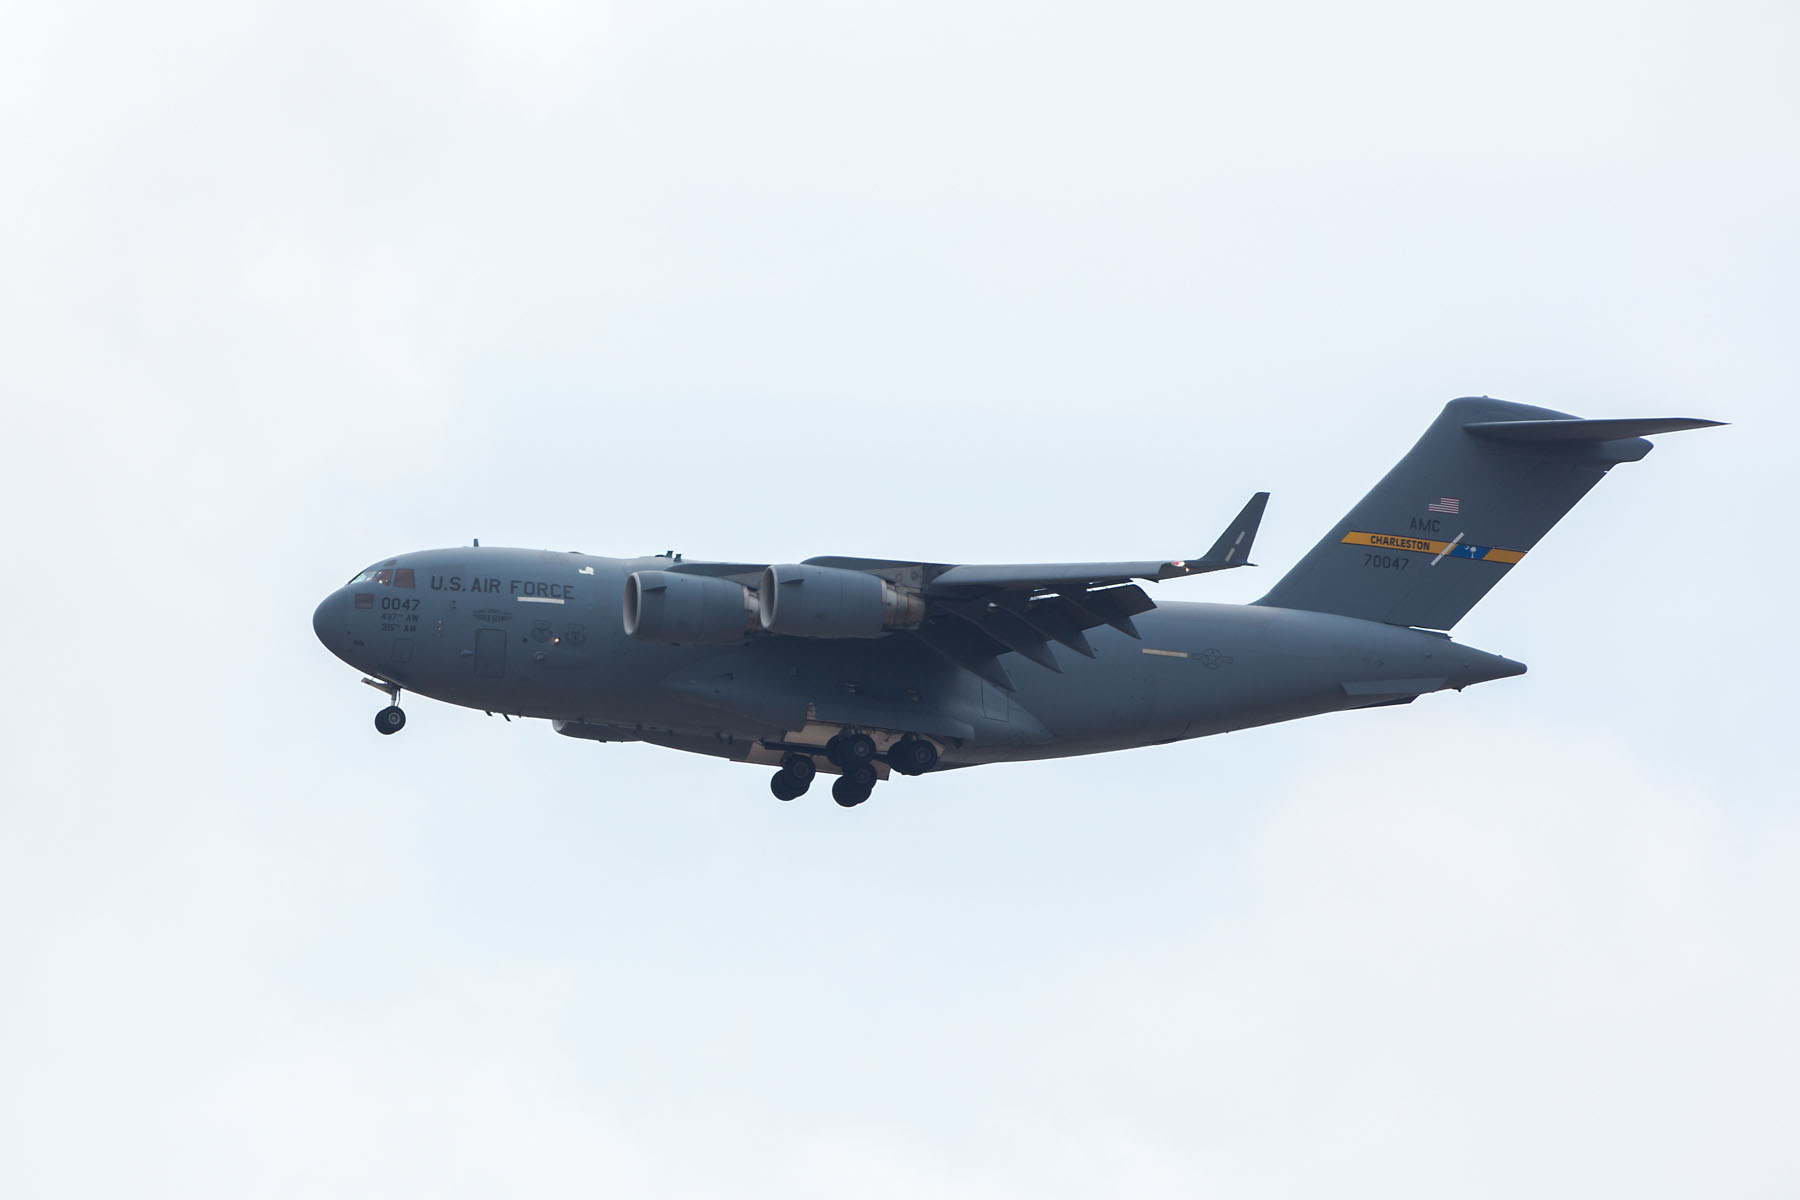 C-17 transport plane, Sioux Falls Air Show, August 2019.  Click for next photo.